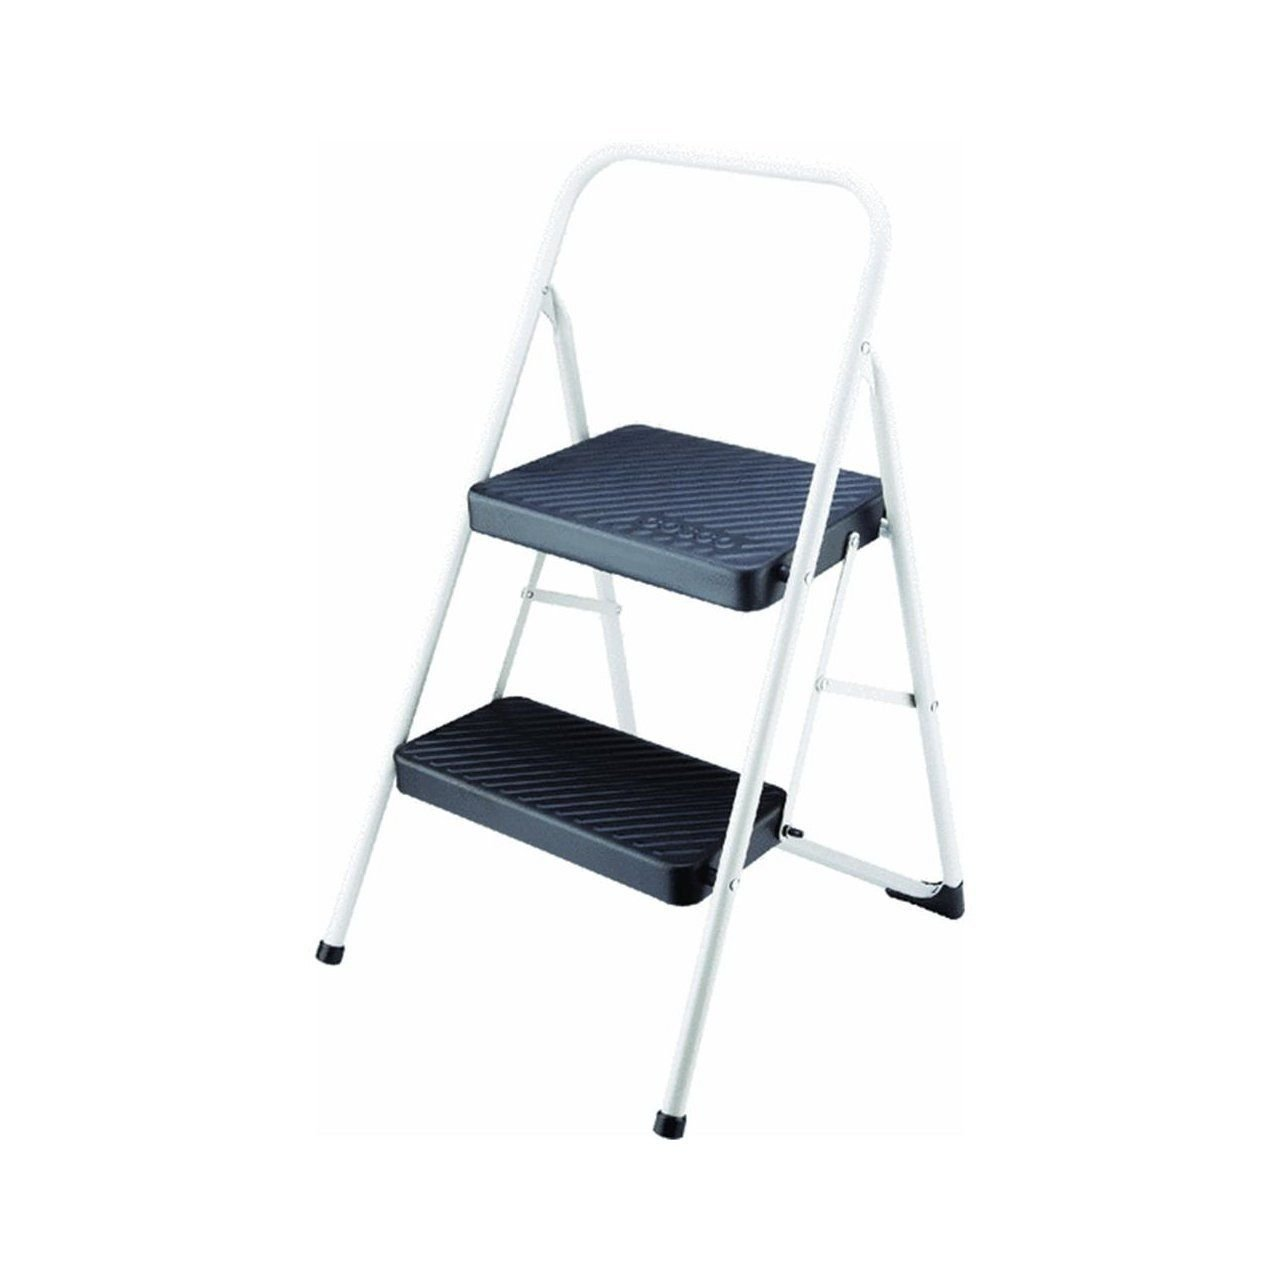 Generic YC-US2-151102-224 <8&28521> ay, New Gray, New 2-Step, Folding Step Cool Gray, Stool, New Folding Ste